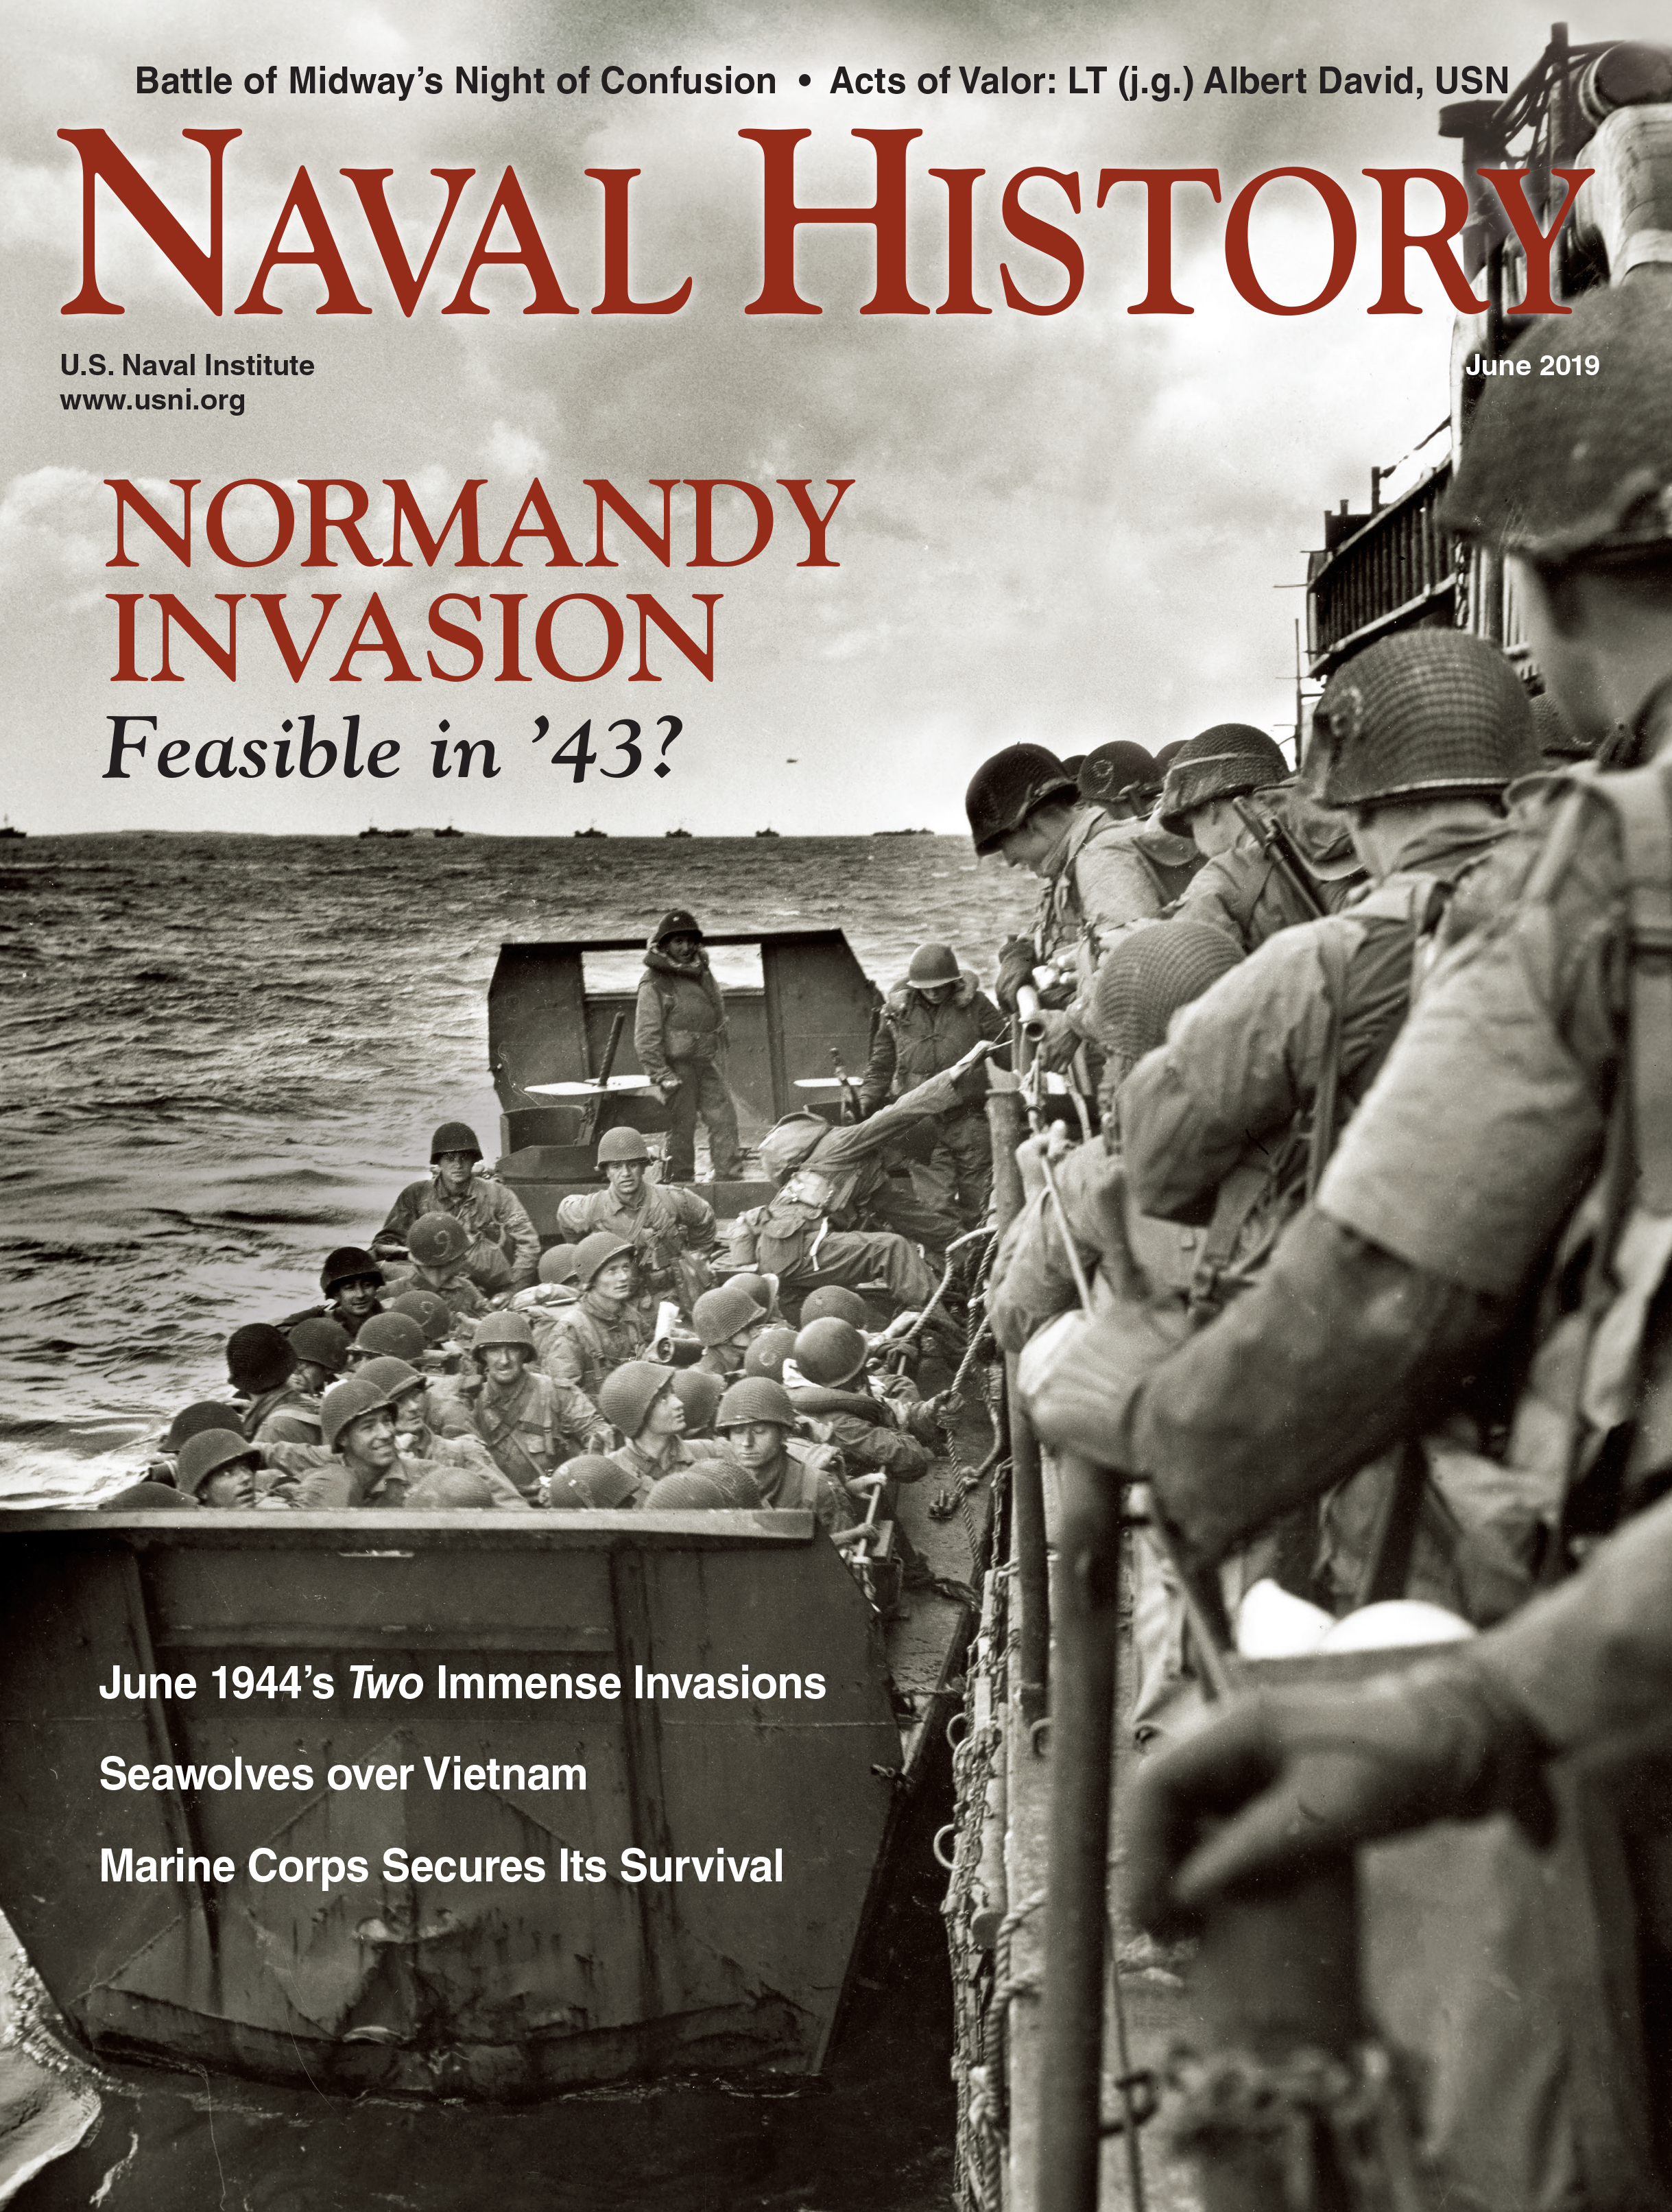 Naval History Magazine - June 2019 Volume 33, Number 3 Cover